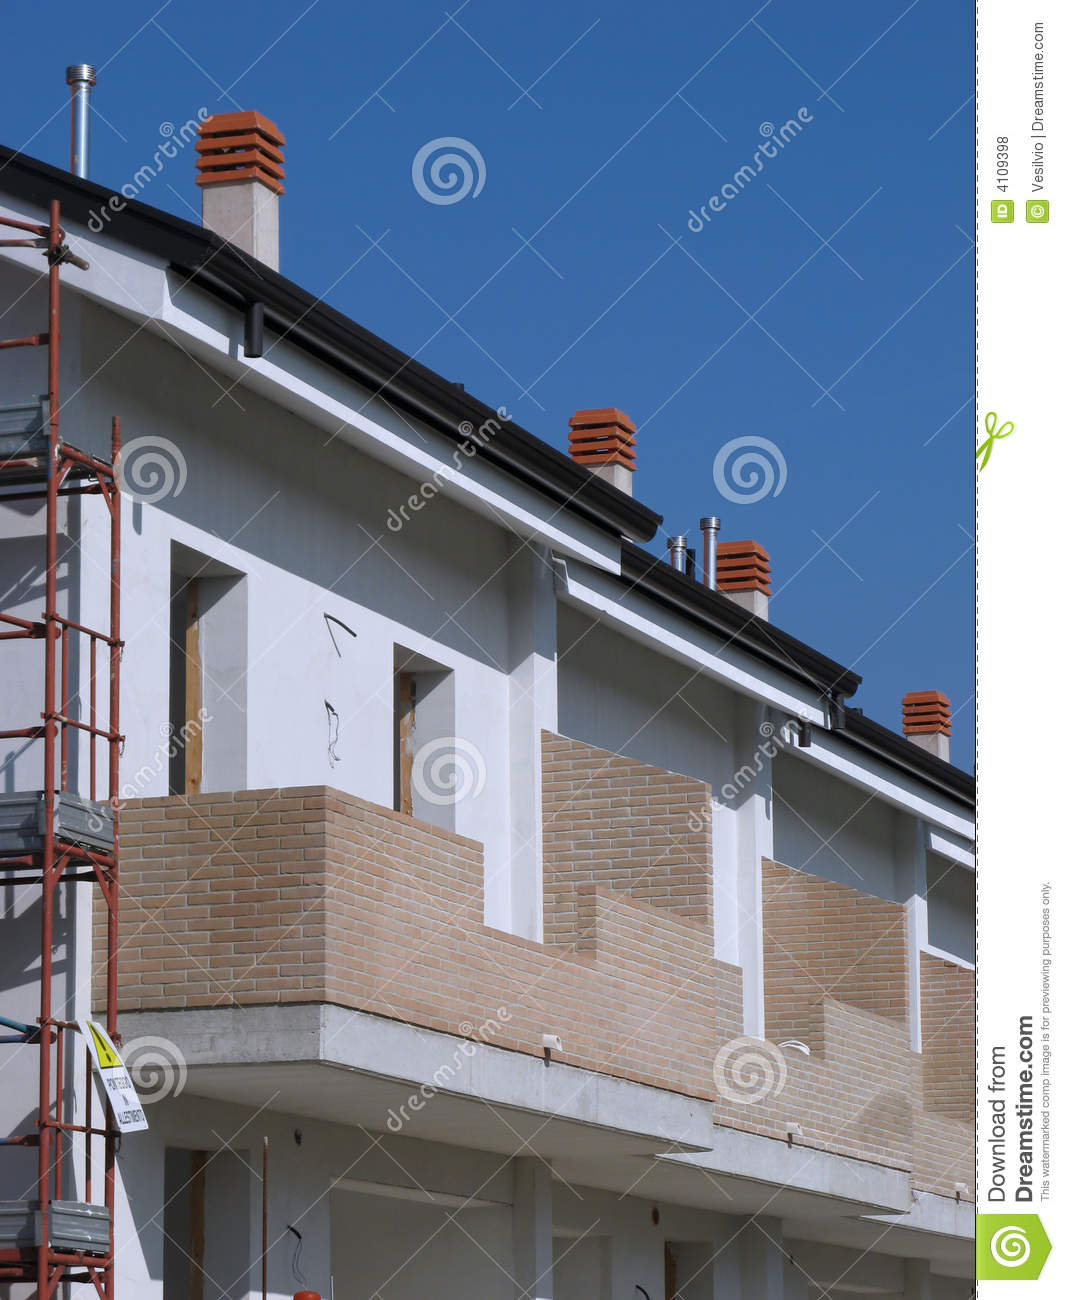 House Building Site Royalty Free Stock Photos Image 4109398